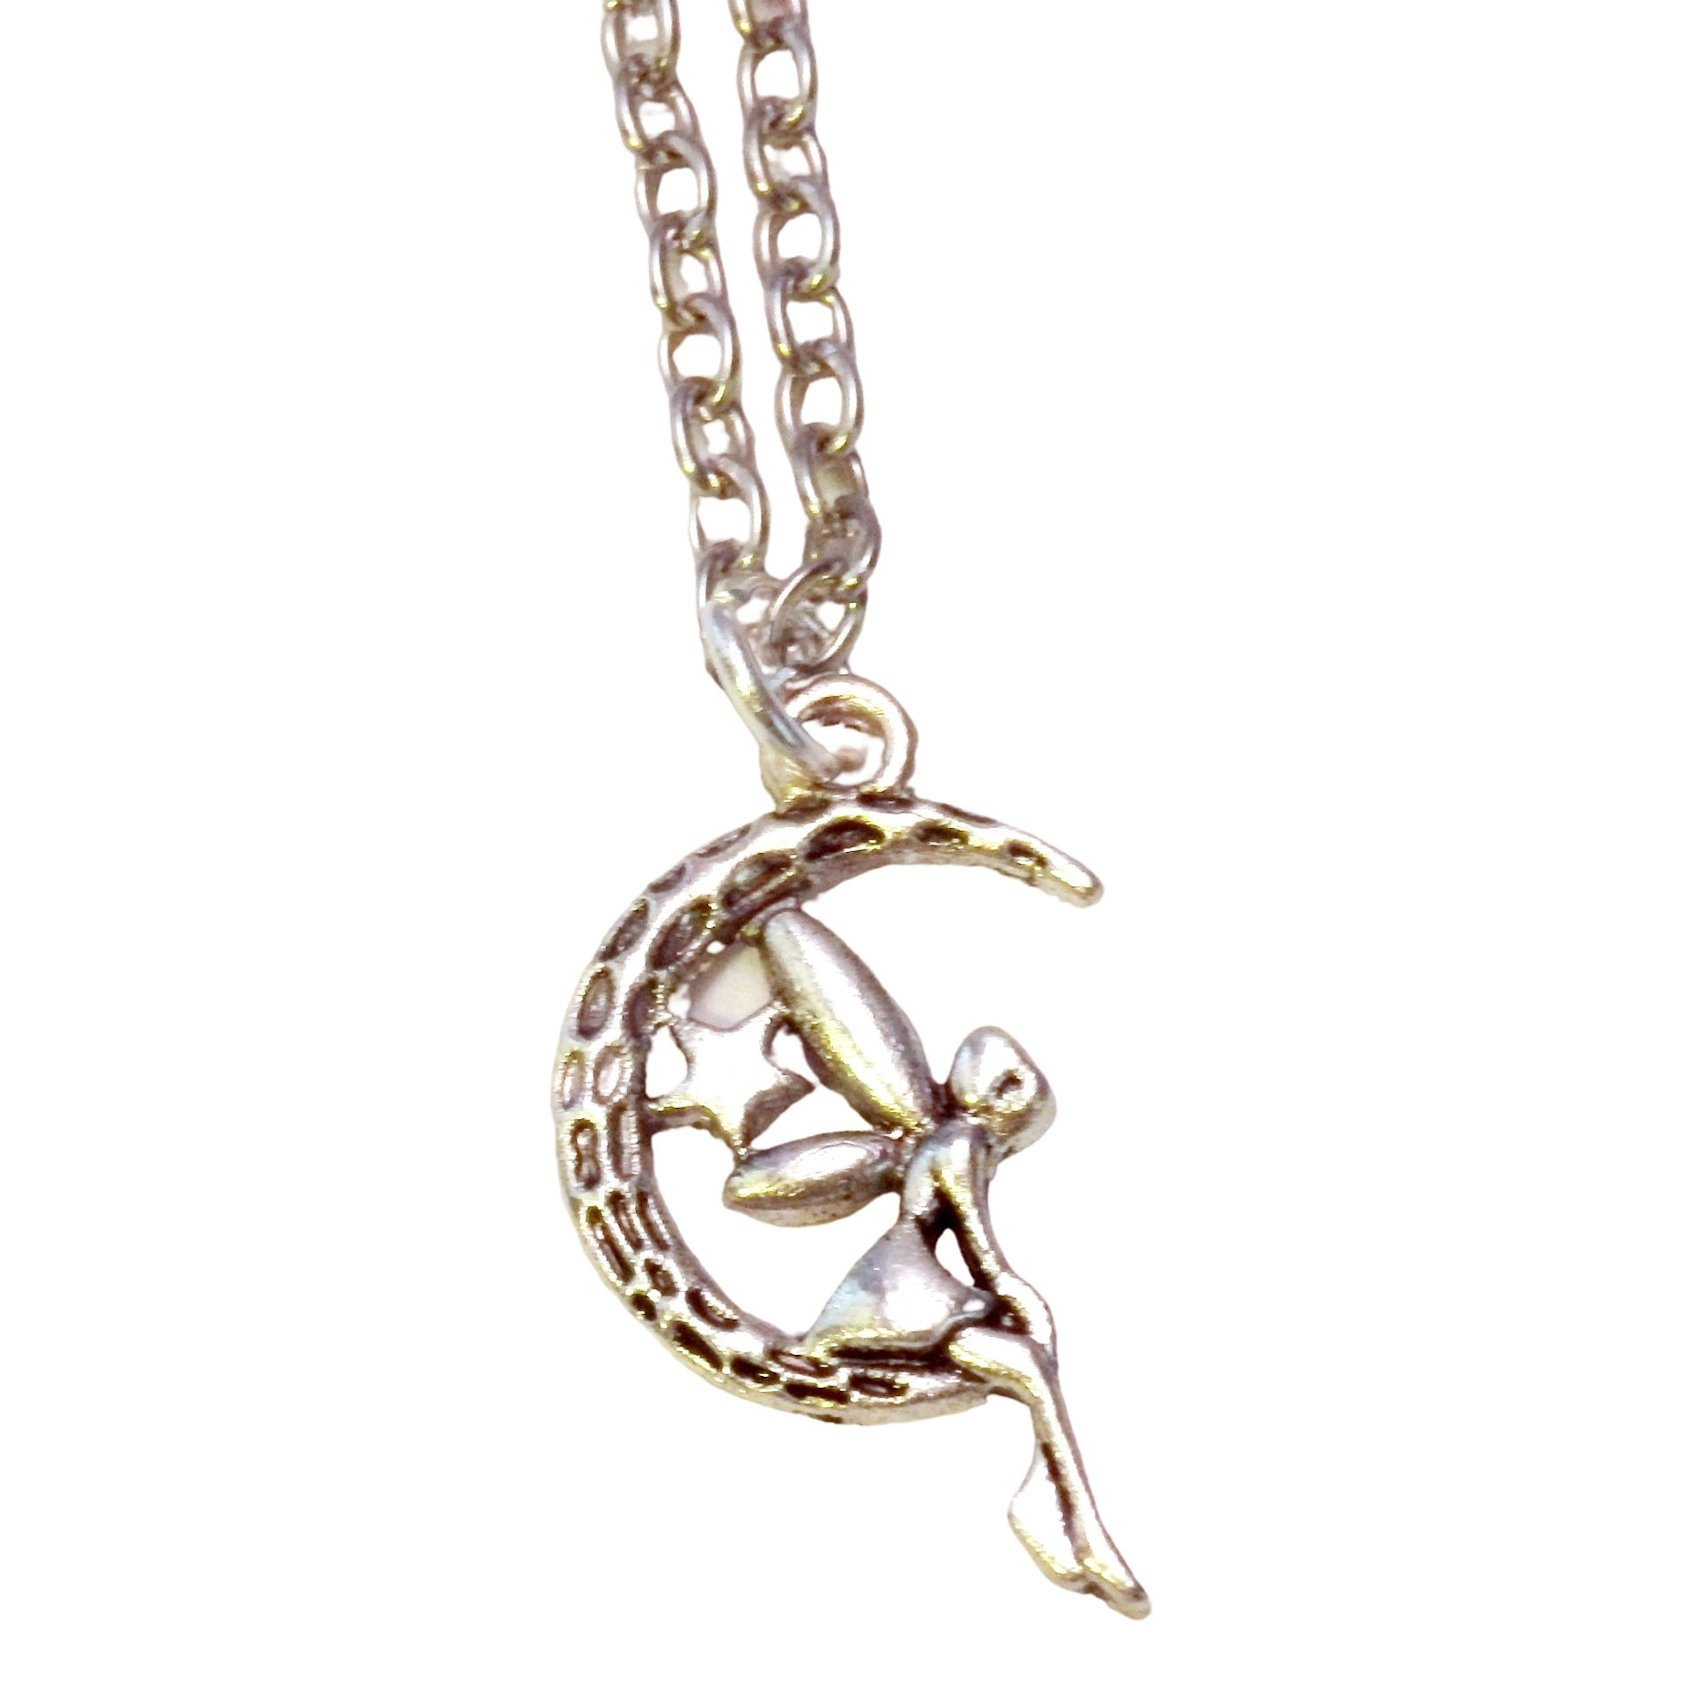 Fairy Girl Sitting on the Moon Necklace 683